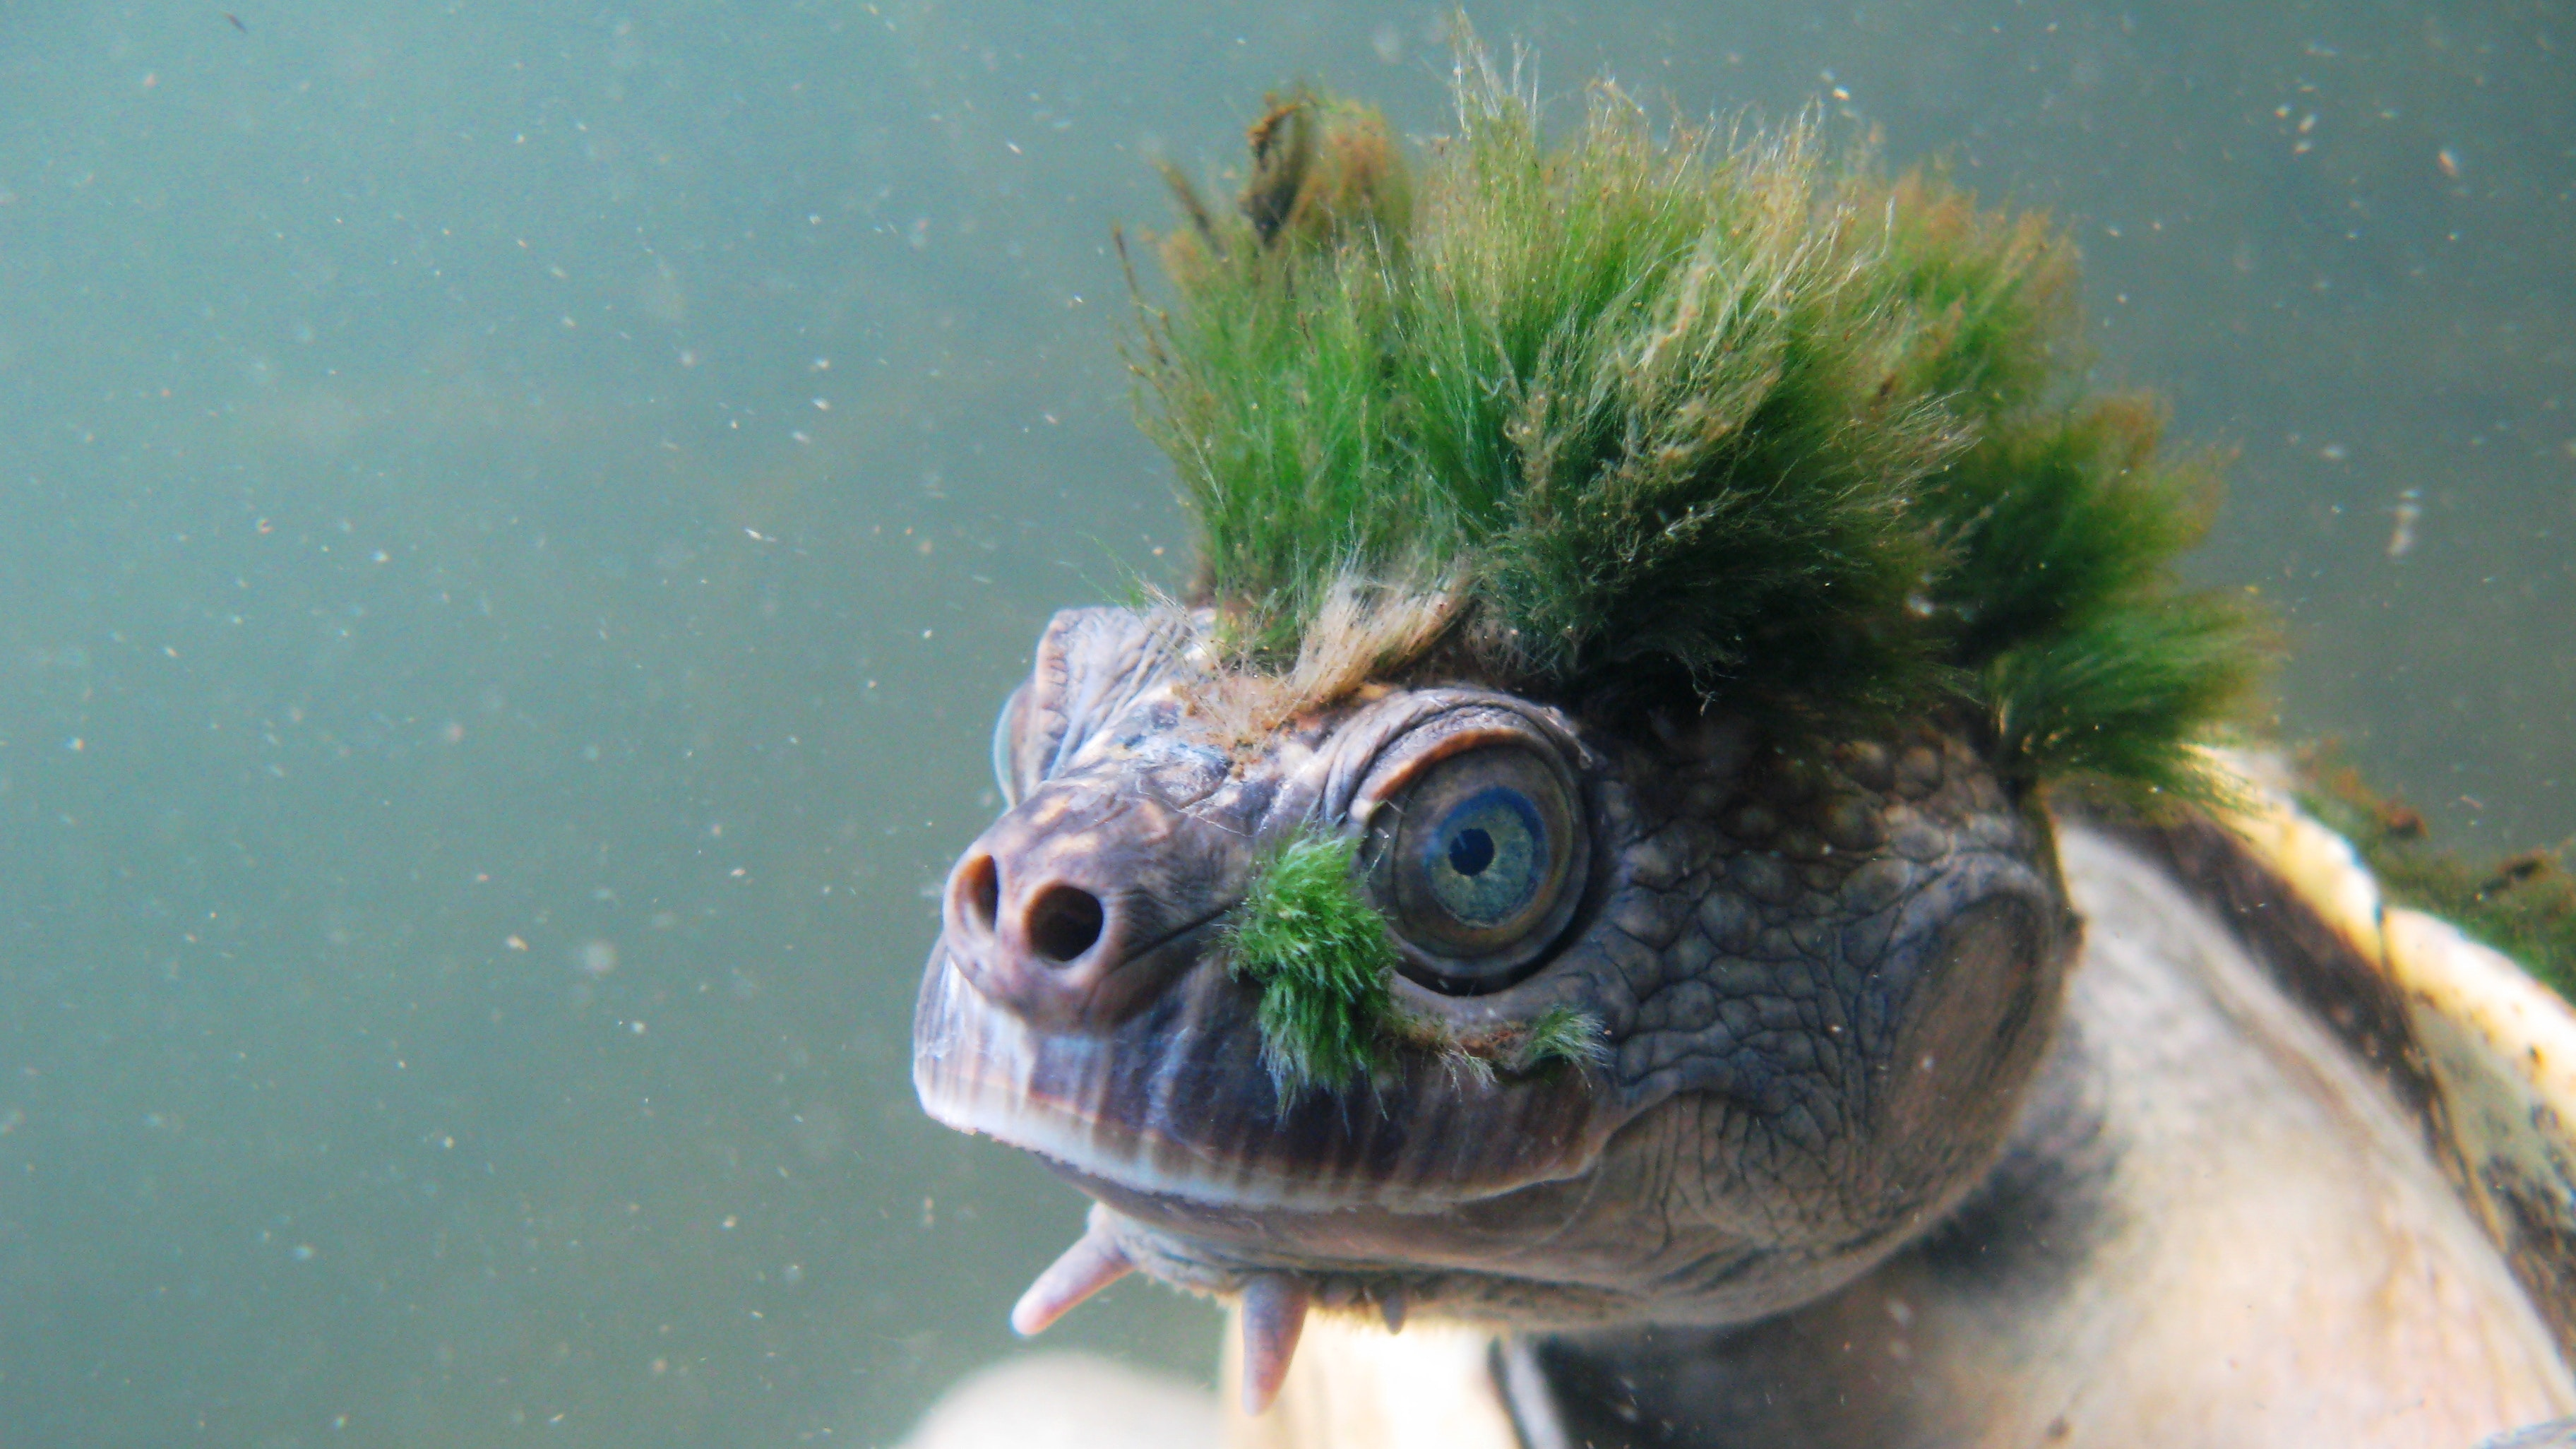 Queensland punk turtle with green mohawk added to endangered list